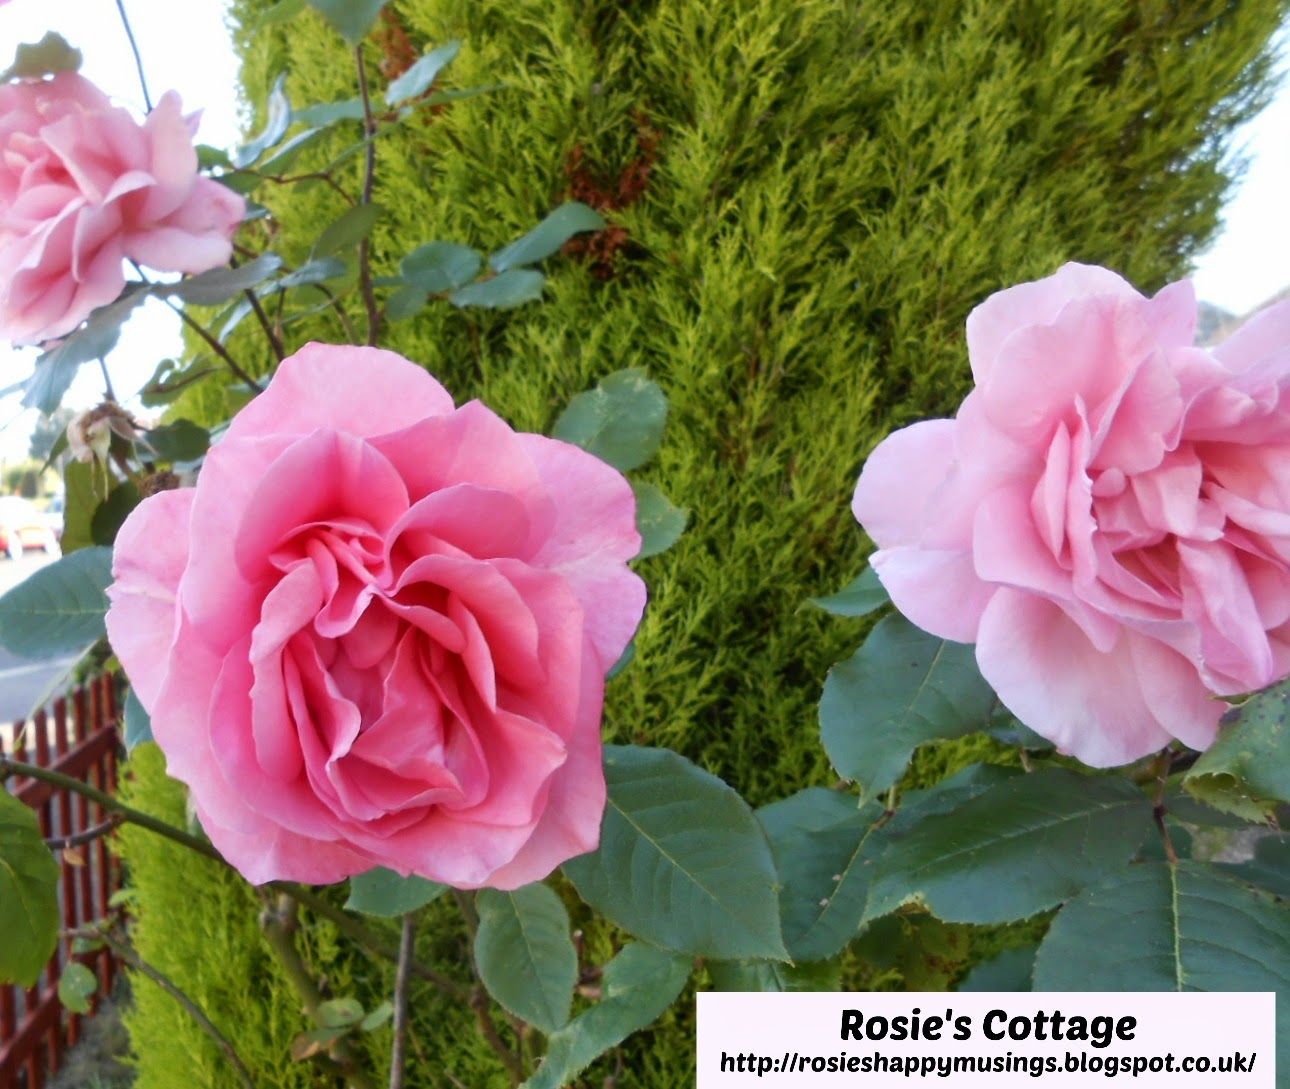 beautiful pink roses in Rosie's garden